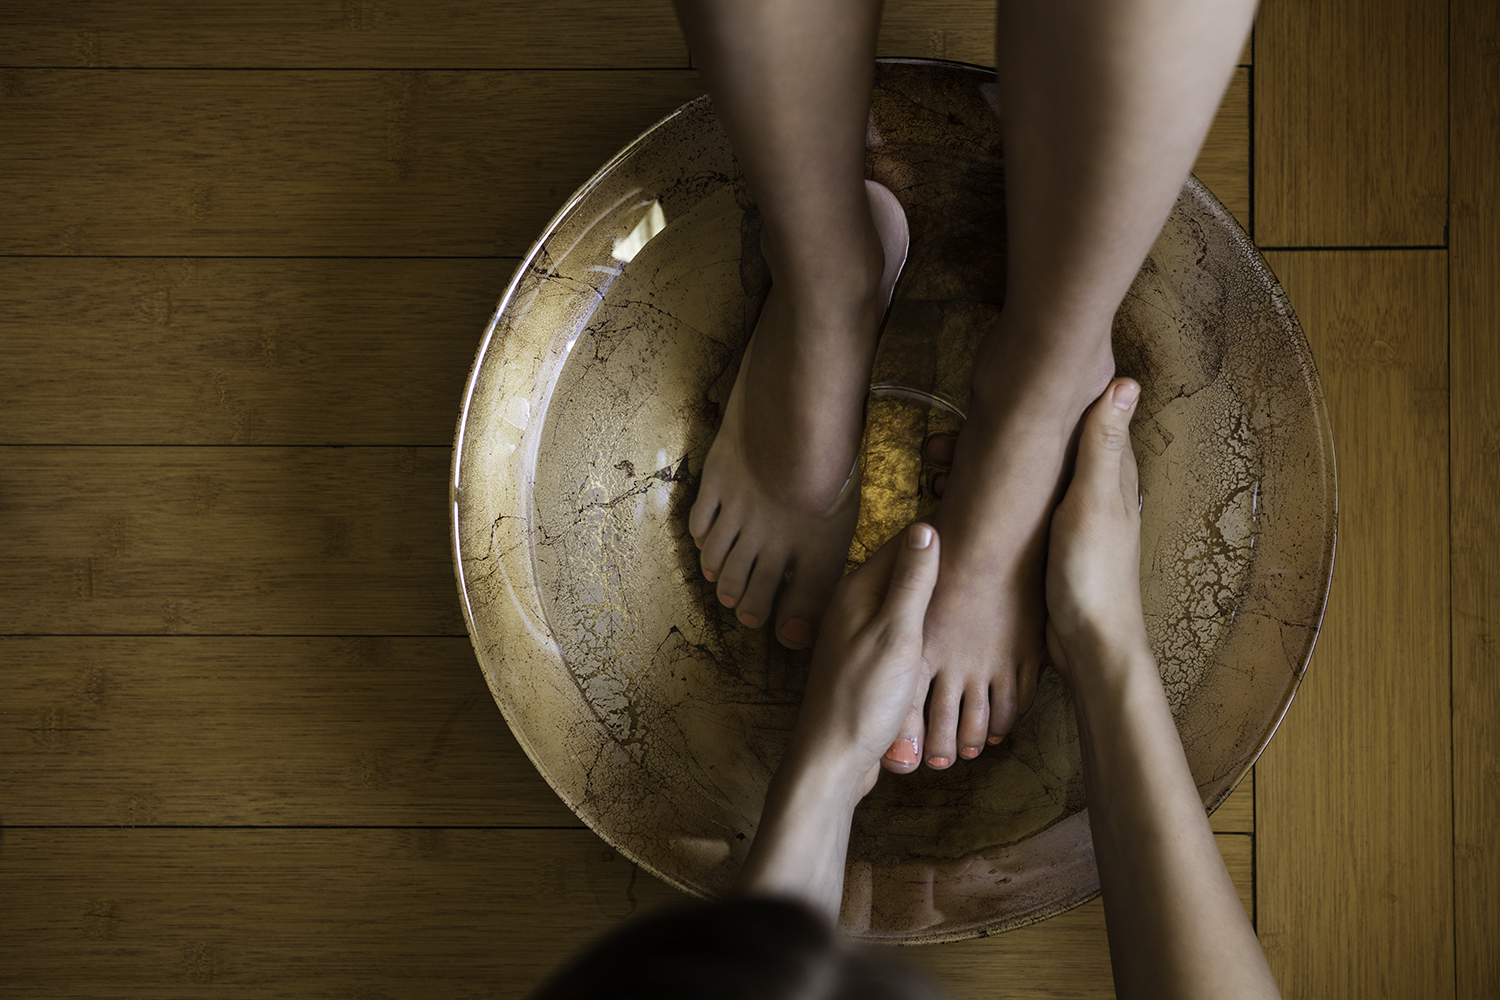 The spa offers a variety of relaxing treatments, including foot baths.